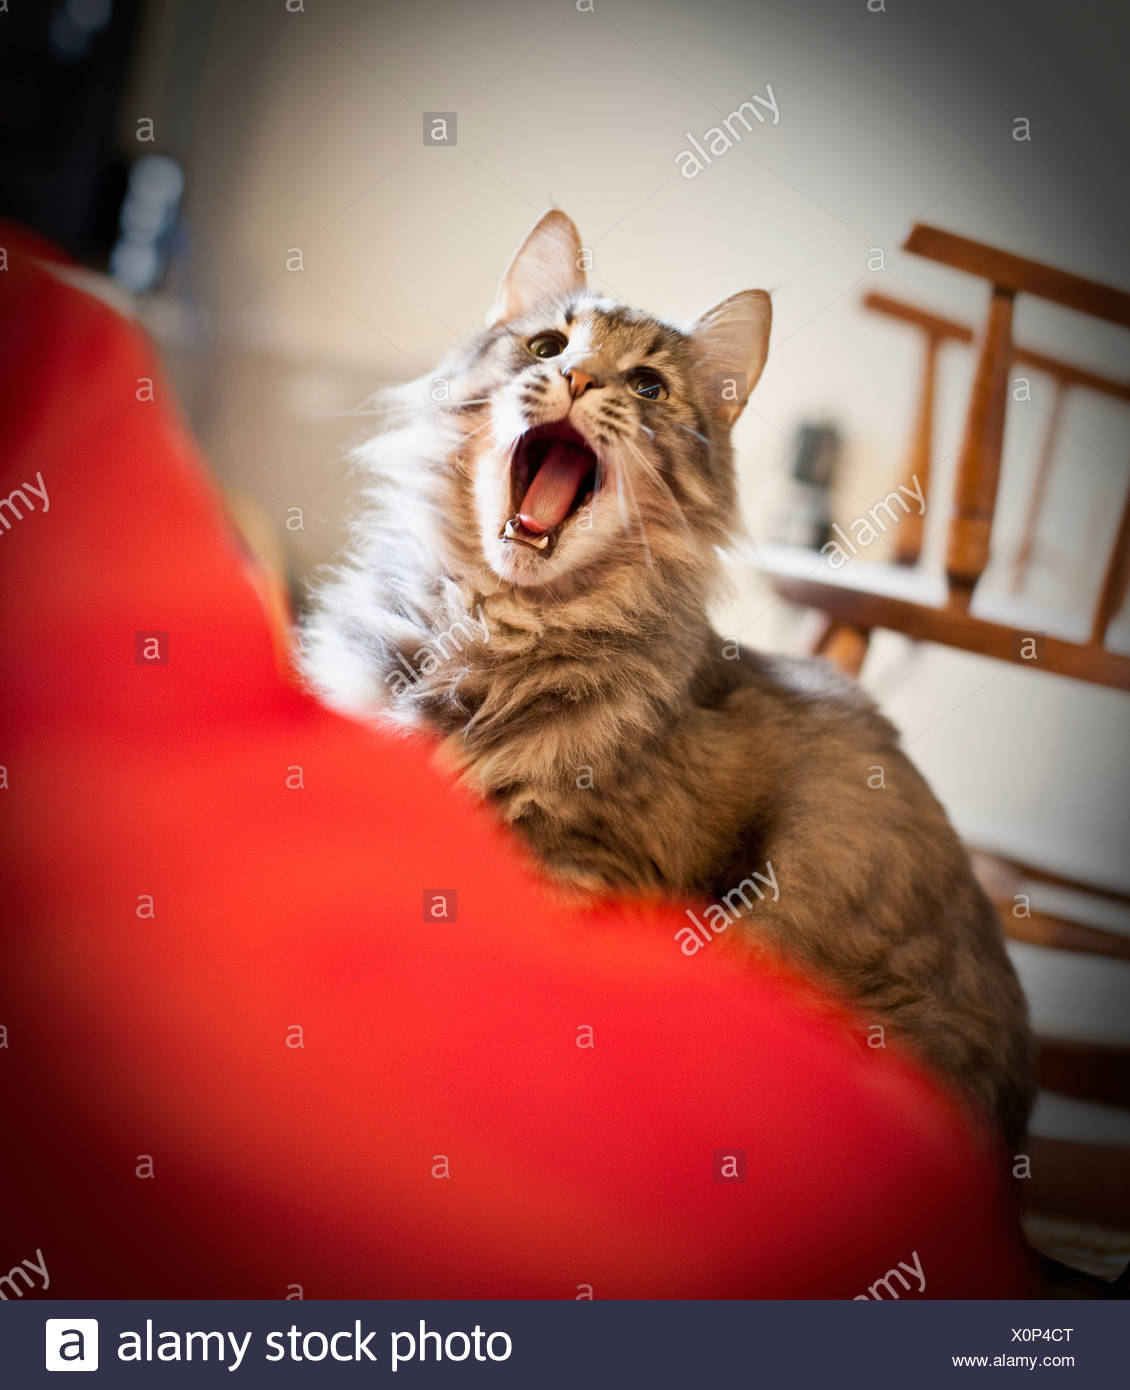 Close-up of a cat yawning - Stock Image